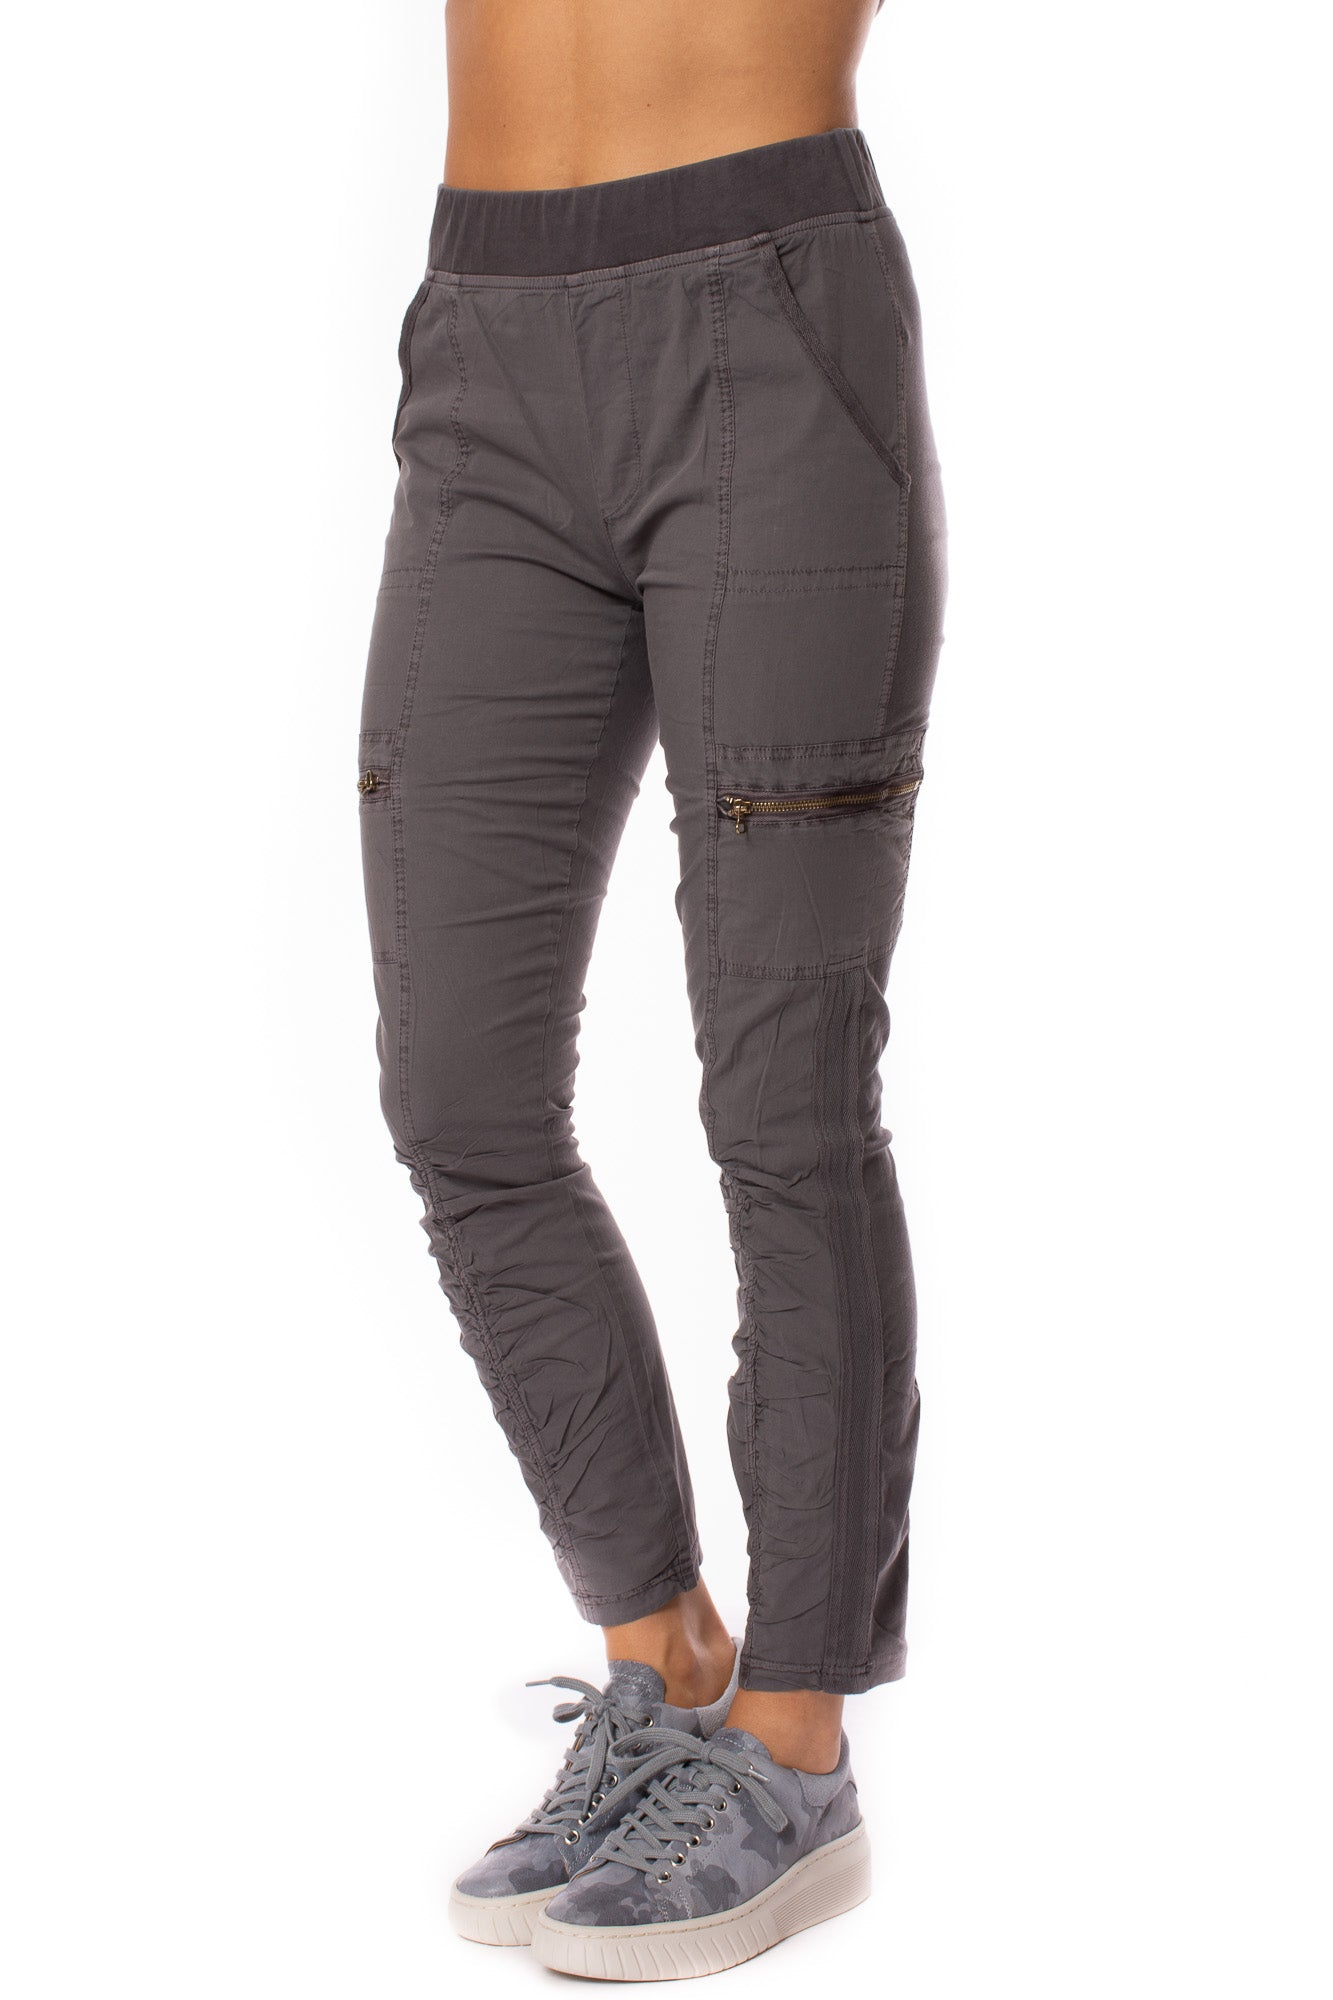 Wearables - Sybil Legging (22356W, Dark Grey)